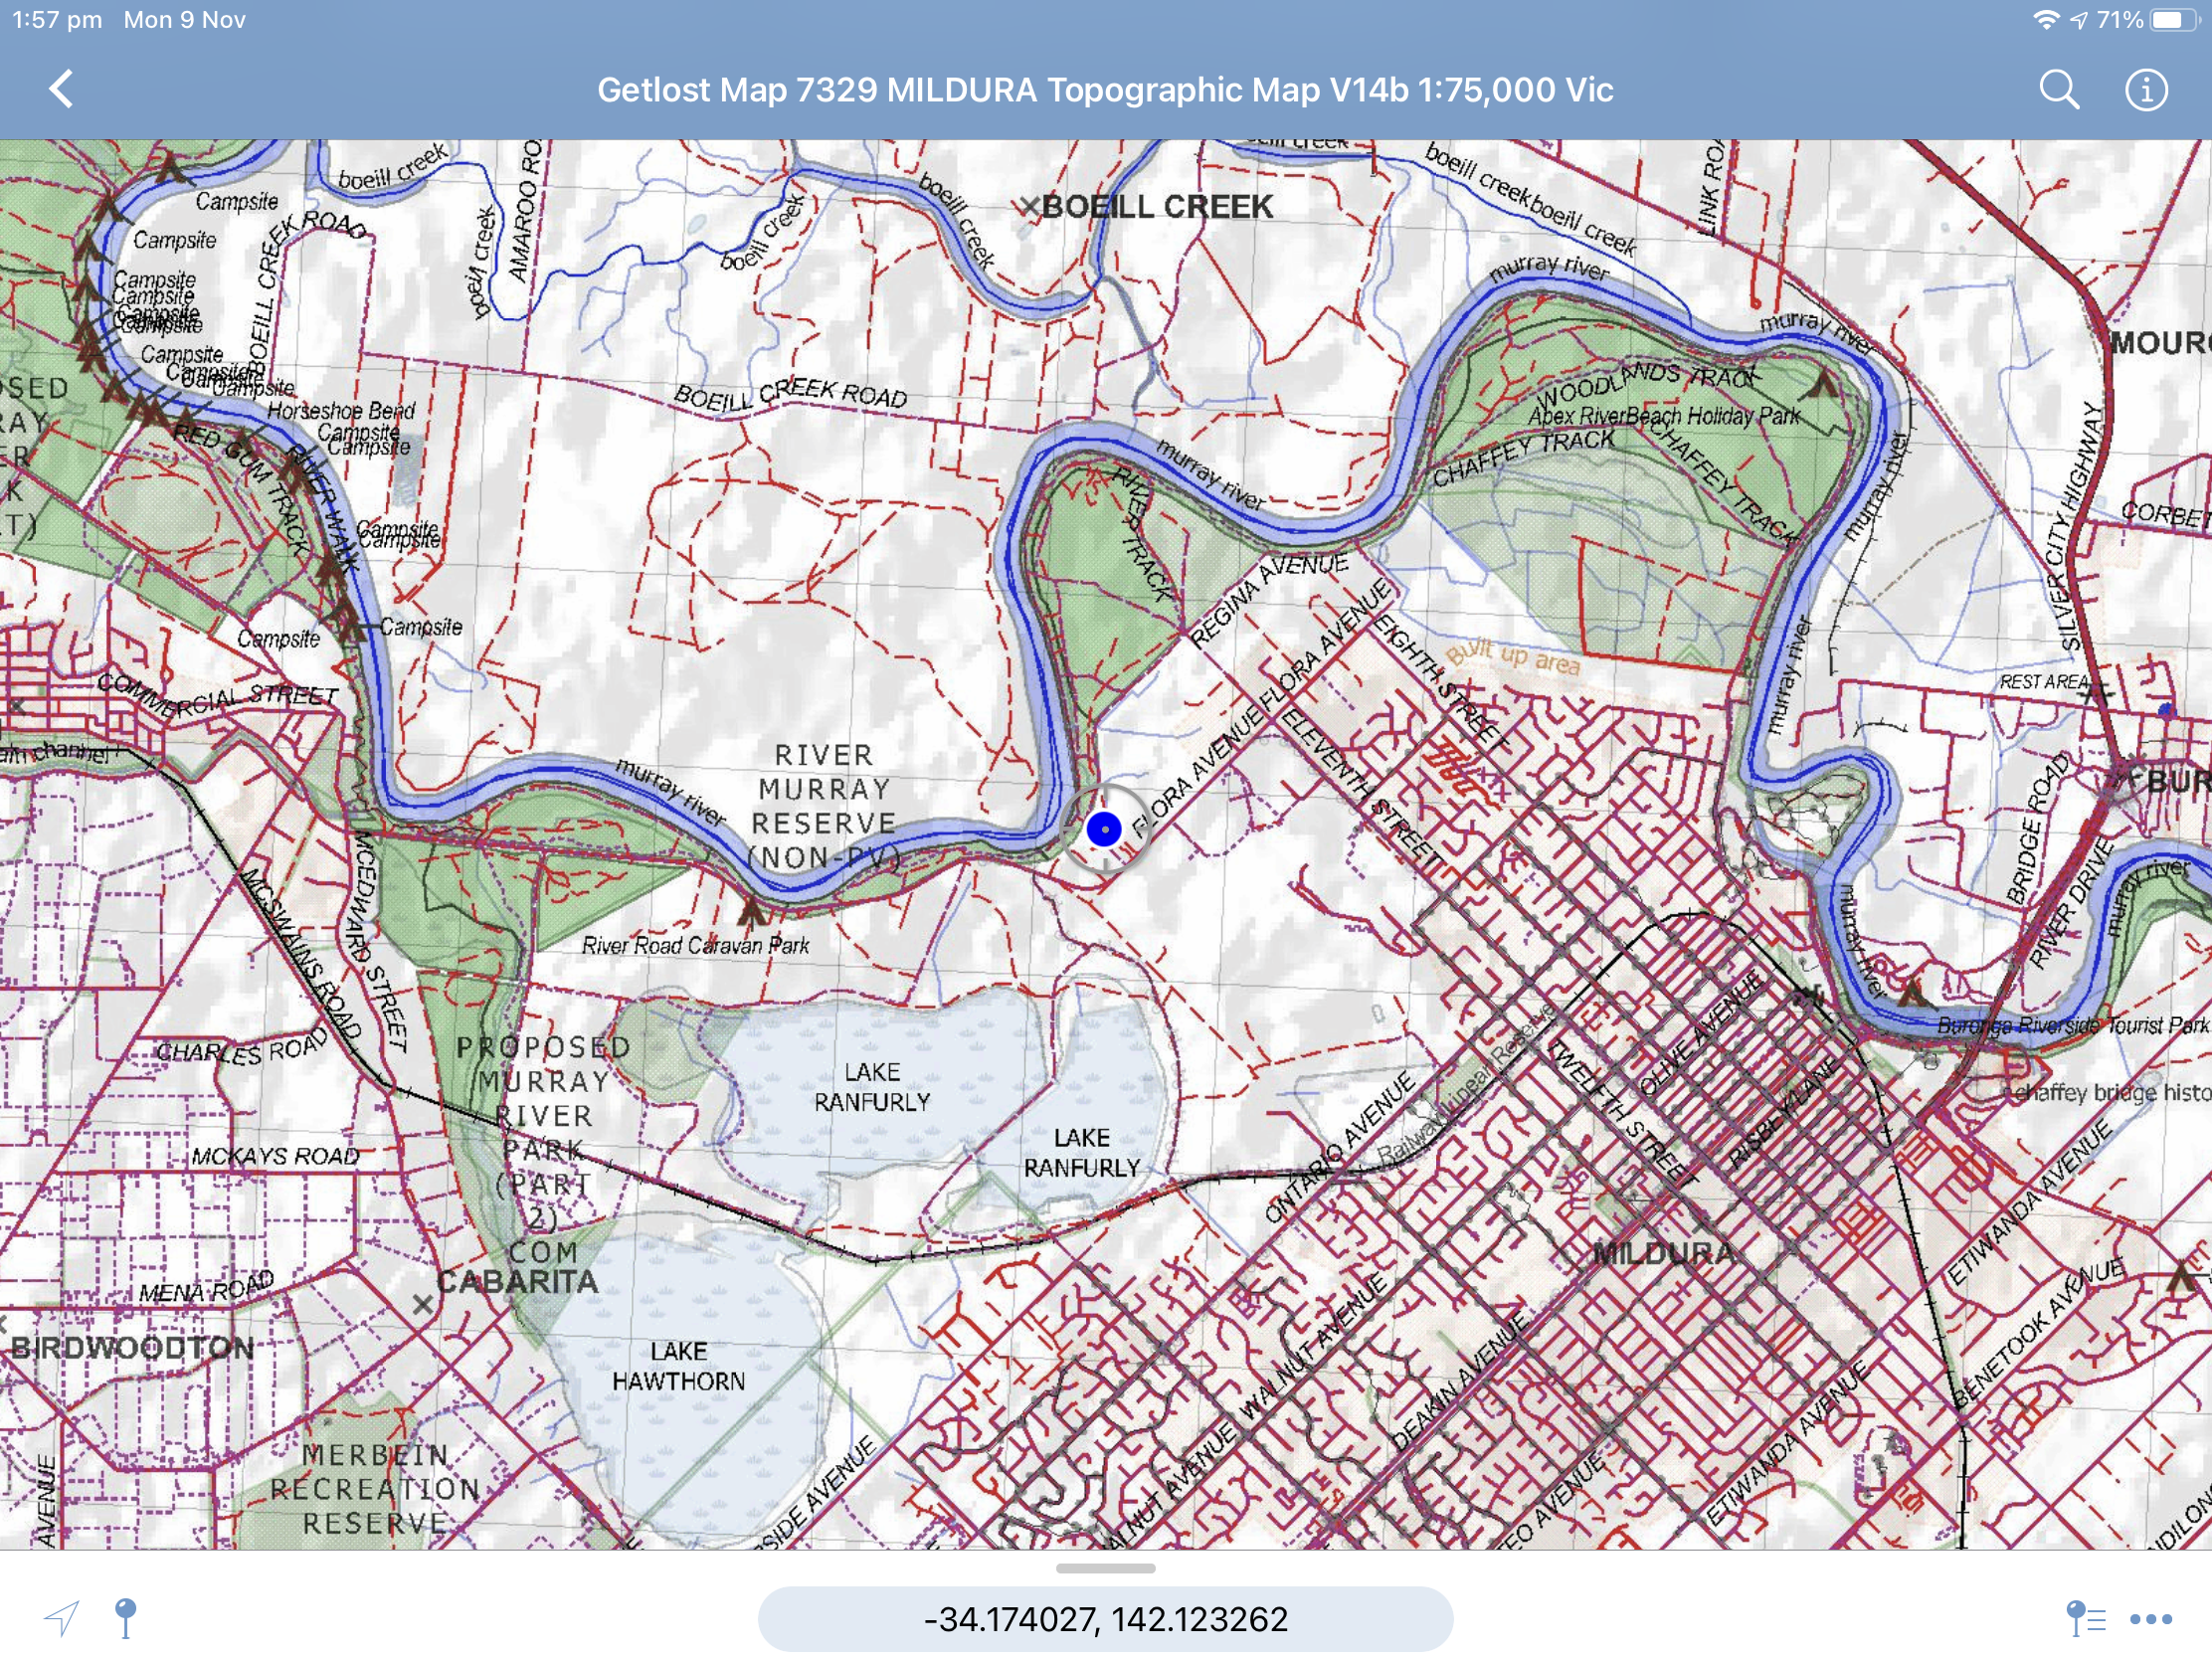 Avenza Maps on iOS GPS mapping software